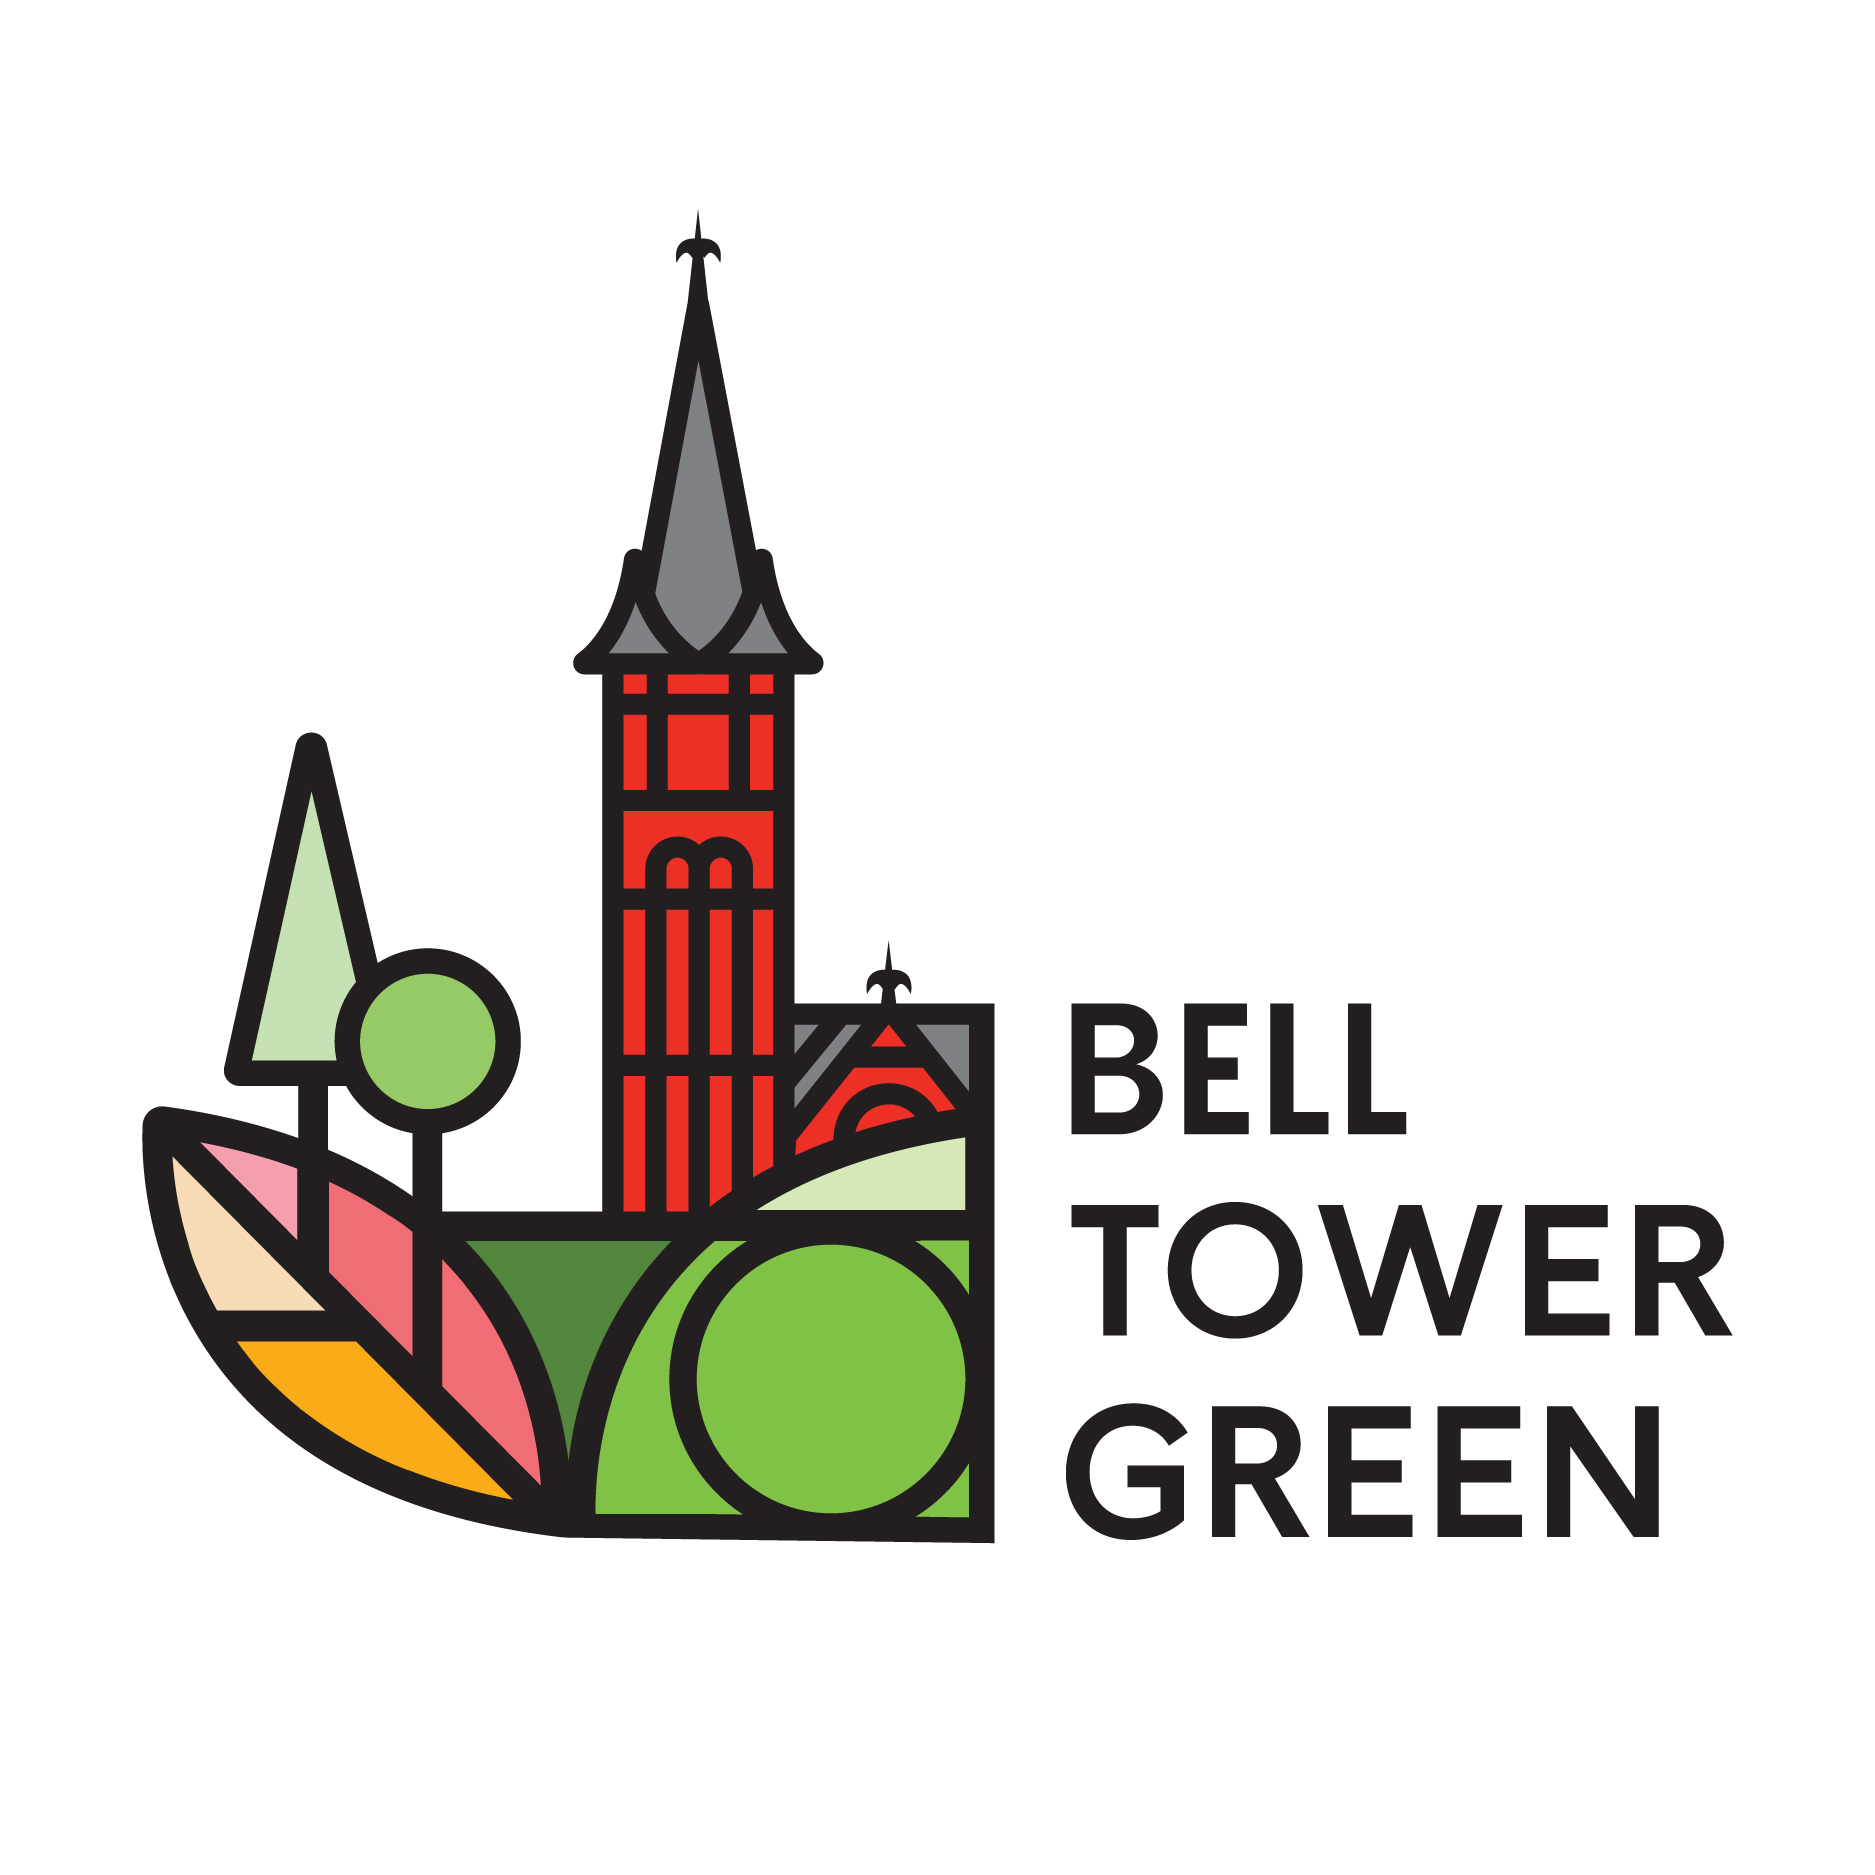 Bell Tower Green